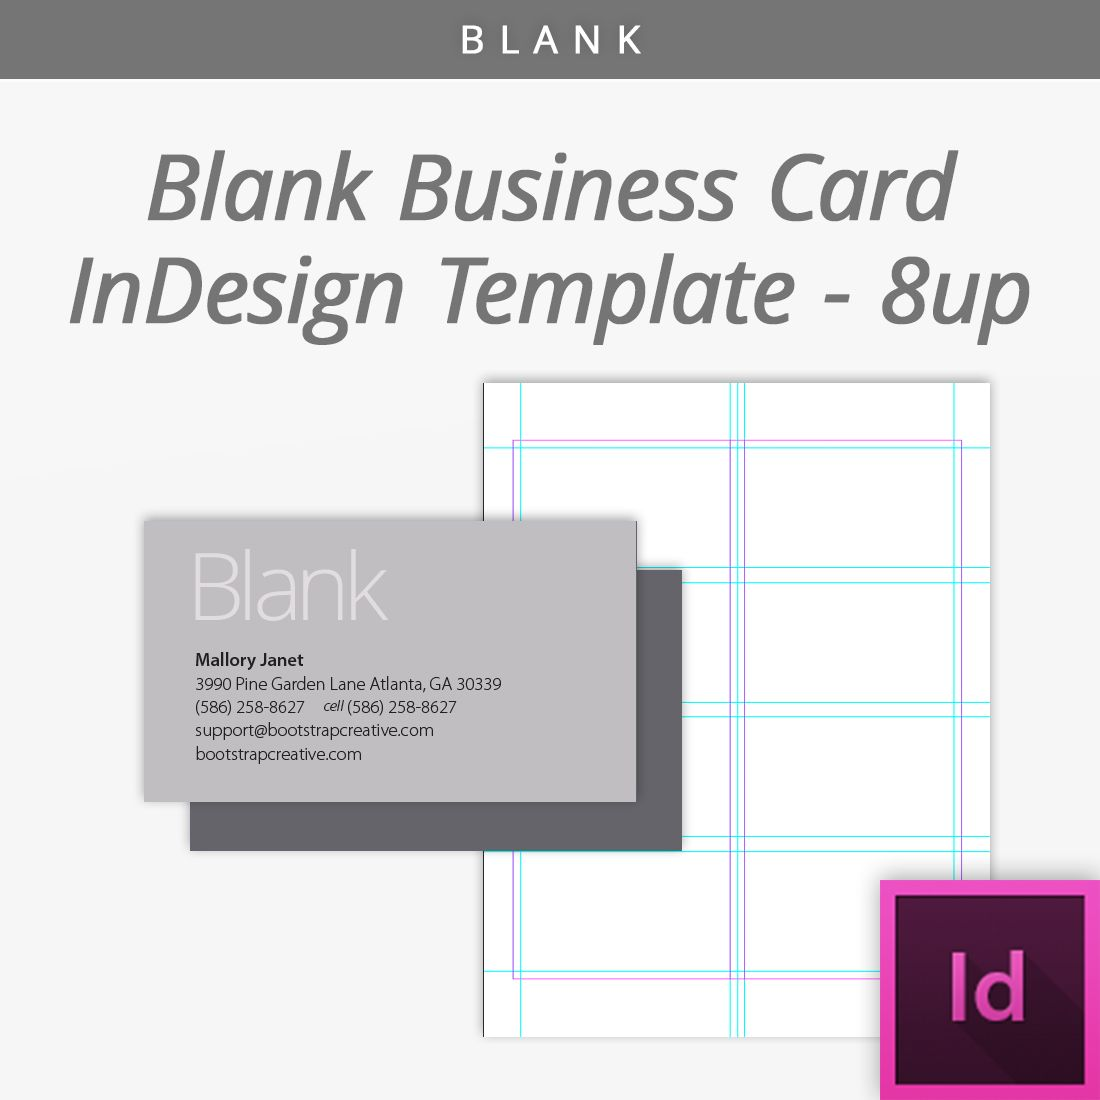 Blank indesign business card template 8 up free download blank indesign business card template 8 up free download designtemplate friedricerecipe Images